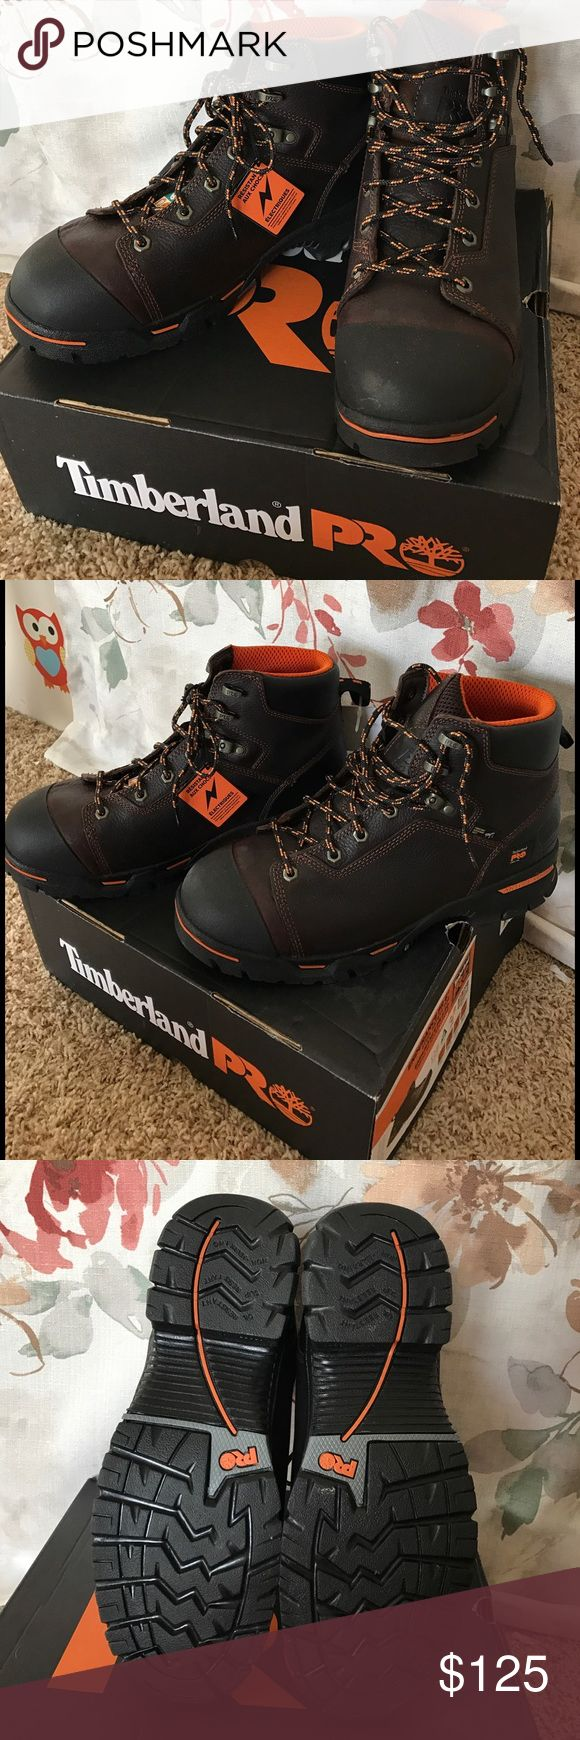 "Timberland Pro Endurance PR 6"" • Steel toe Boot Brand new in box • Steel safety toe • Heat Resistant Sole • Electric shock resistant  • Puncture Resistant out sole. Timberland Shoes Boots"